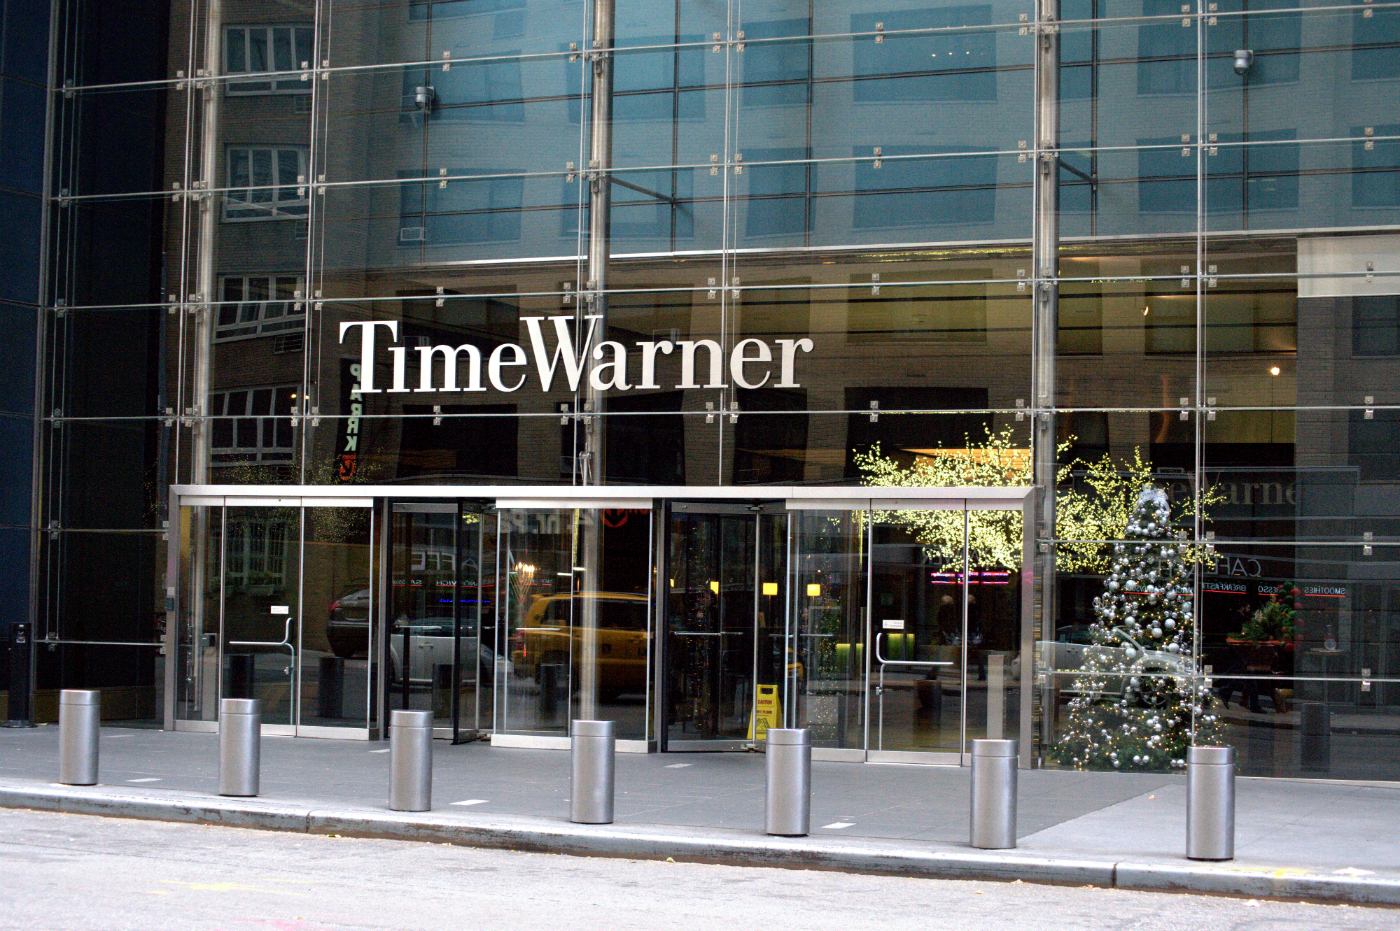 model stock research for the time warner company essay Blonigen was quick to point out that the paper says nothing about any individual deal, including the at&t-time warner blockbuster deciding whether to approve or reject that merger will require significant work to go over detailed data about each company and the media industry.